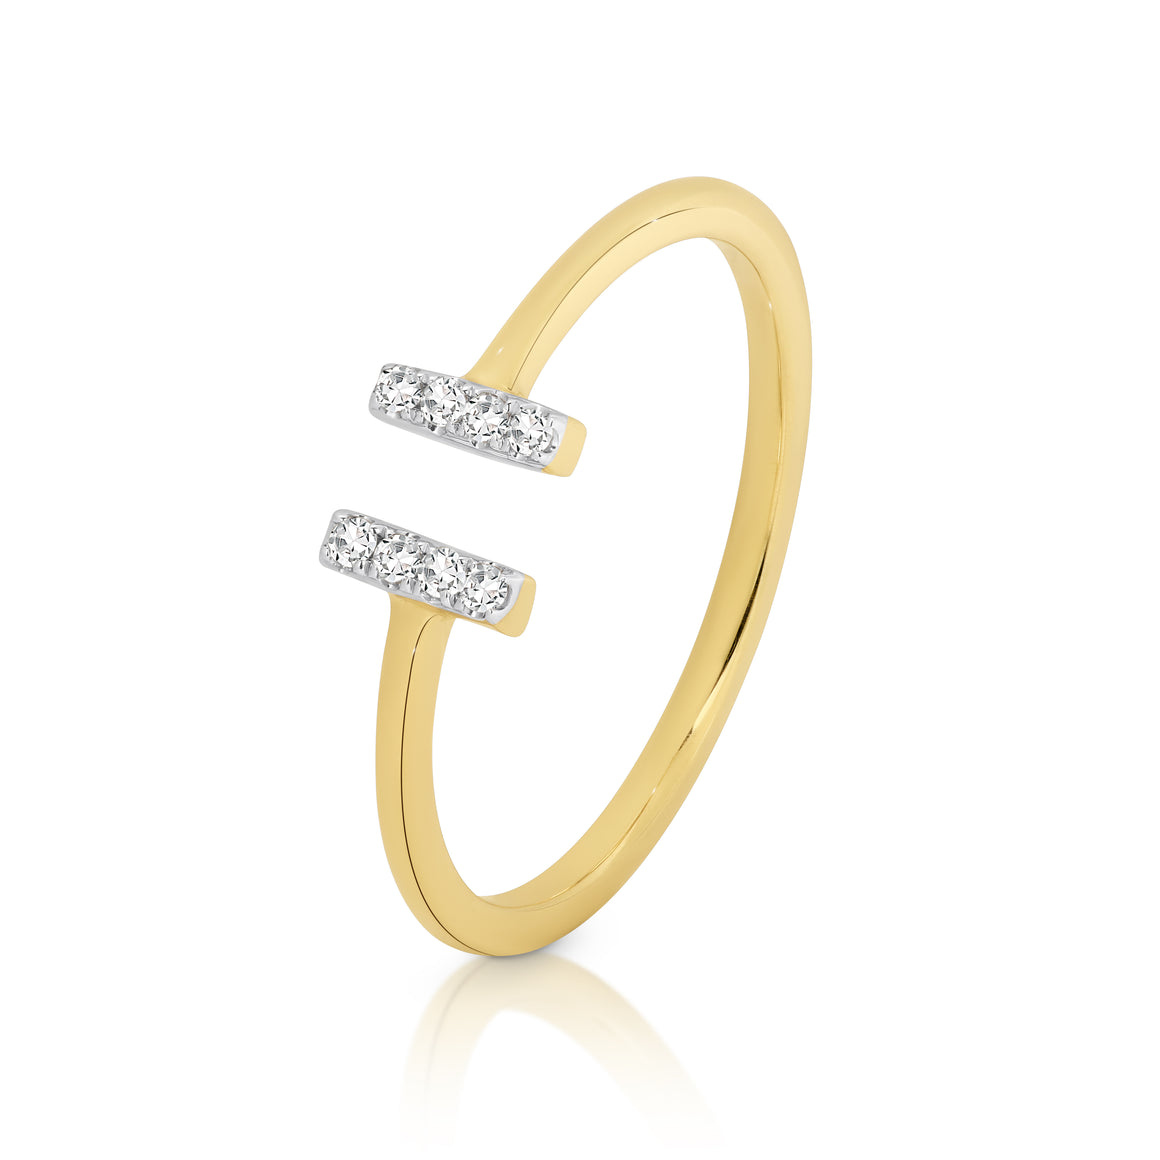 9ct Gold and Diamond 'Harlow' Ring - Gemma Stone  ABN:51 621 127 866